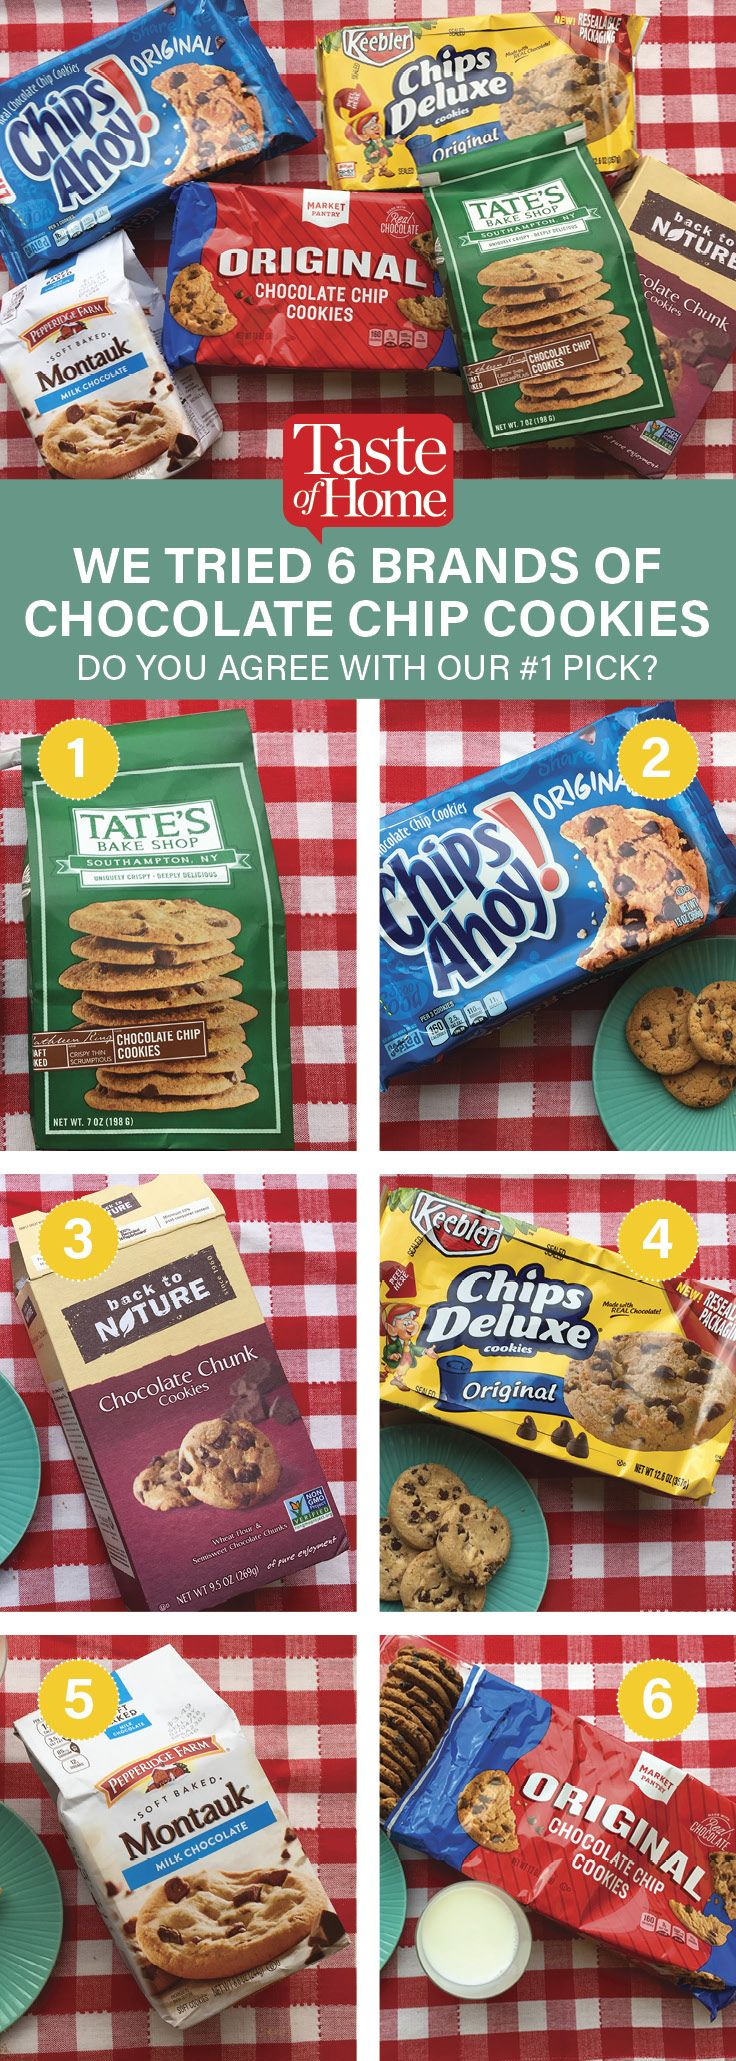 We Tried 6 Brands of Chocolate Chip Cookies – Do You Agree With Our #1 Pick? (from Taste of Home)